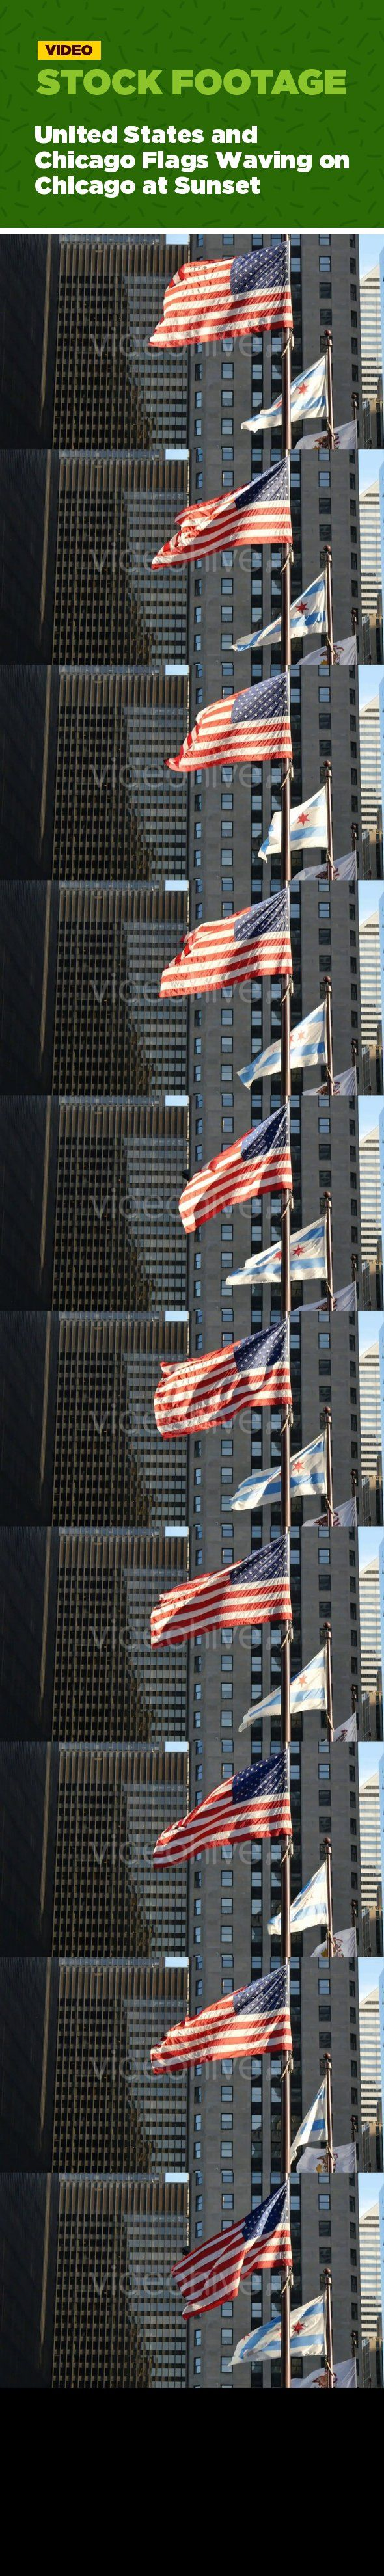 buildings, capital, country, democracy, election, elections, flag, government, patriotism, power, results, sign, symbol, waves, wind Flagstaff on the Golden Mile in Chicago city center. American flags waving in the Windy City of Chicago. Flags with the skyscrapers glass windows background.